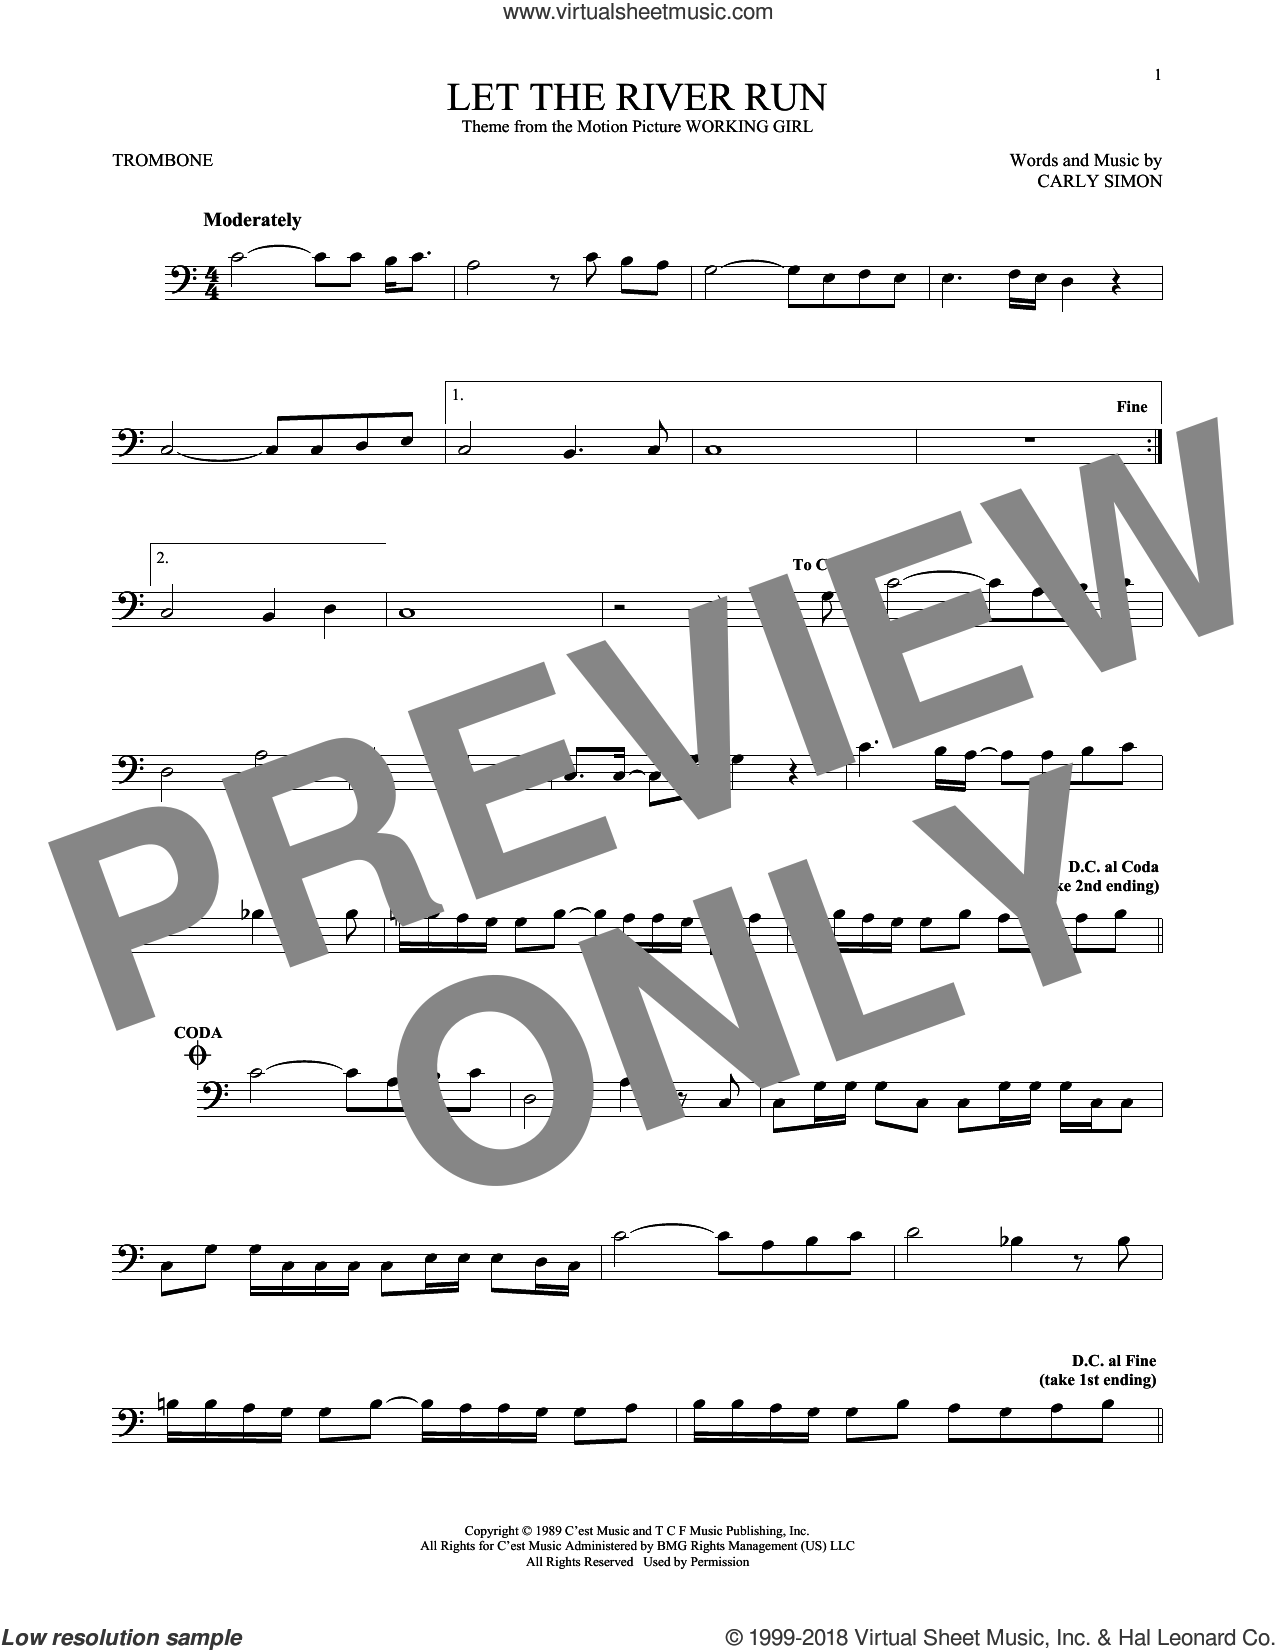 Let The River Run sheet music for trombone solo by Carly Simon, intermediate trombone. Score Image Preview.